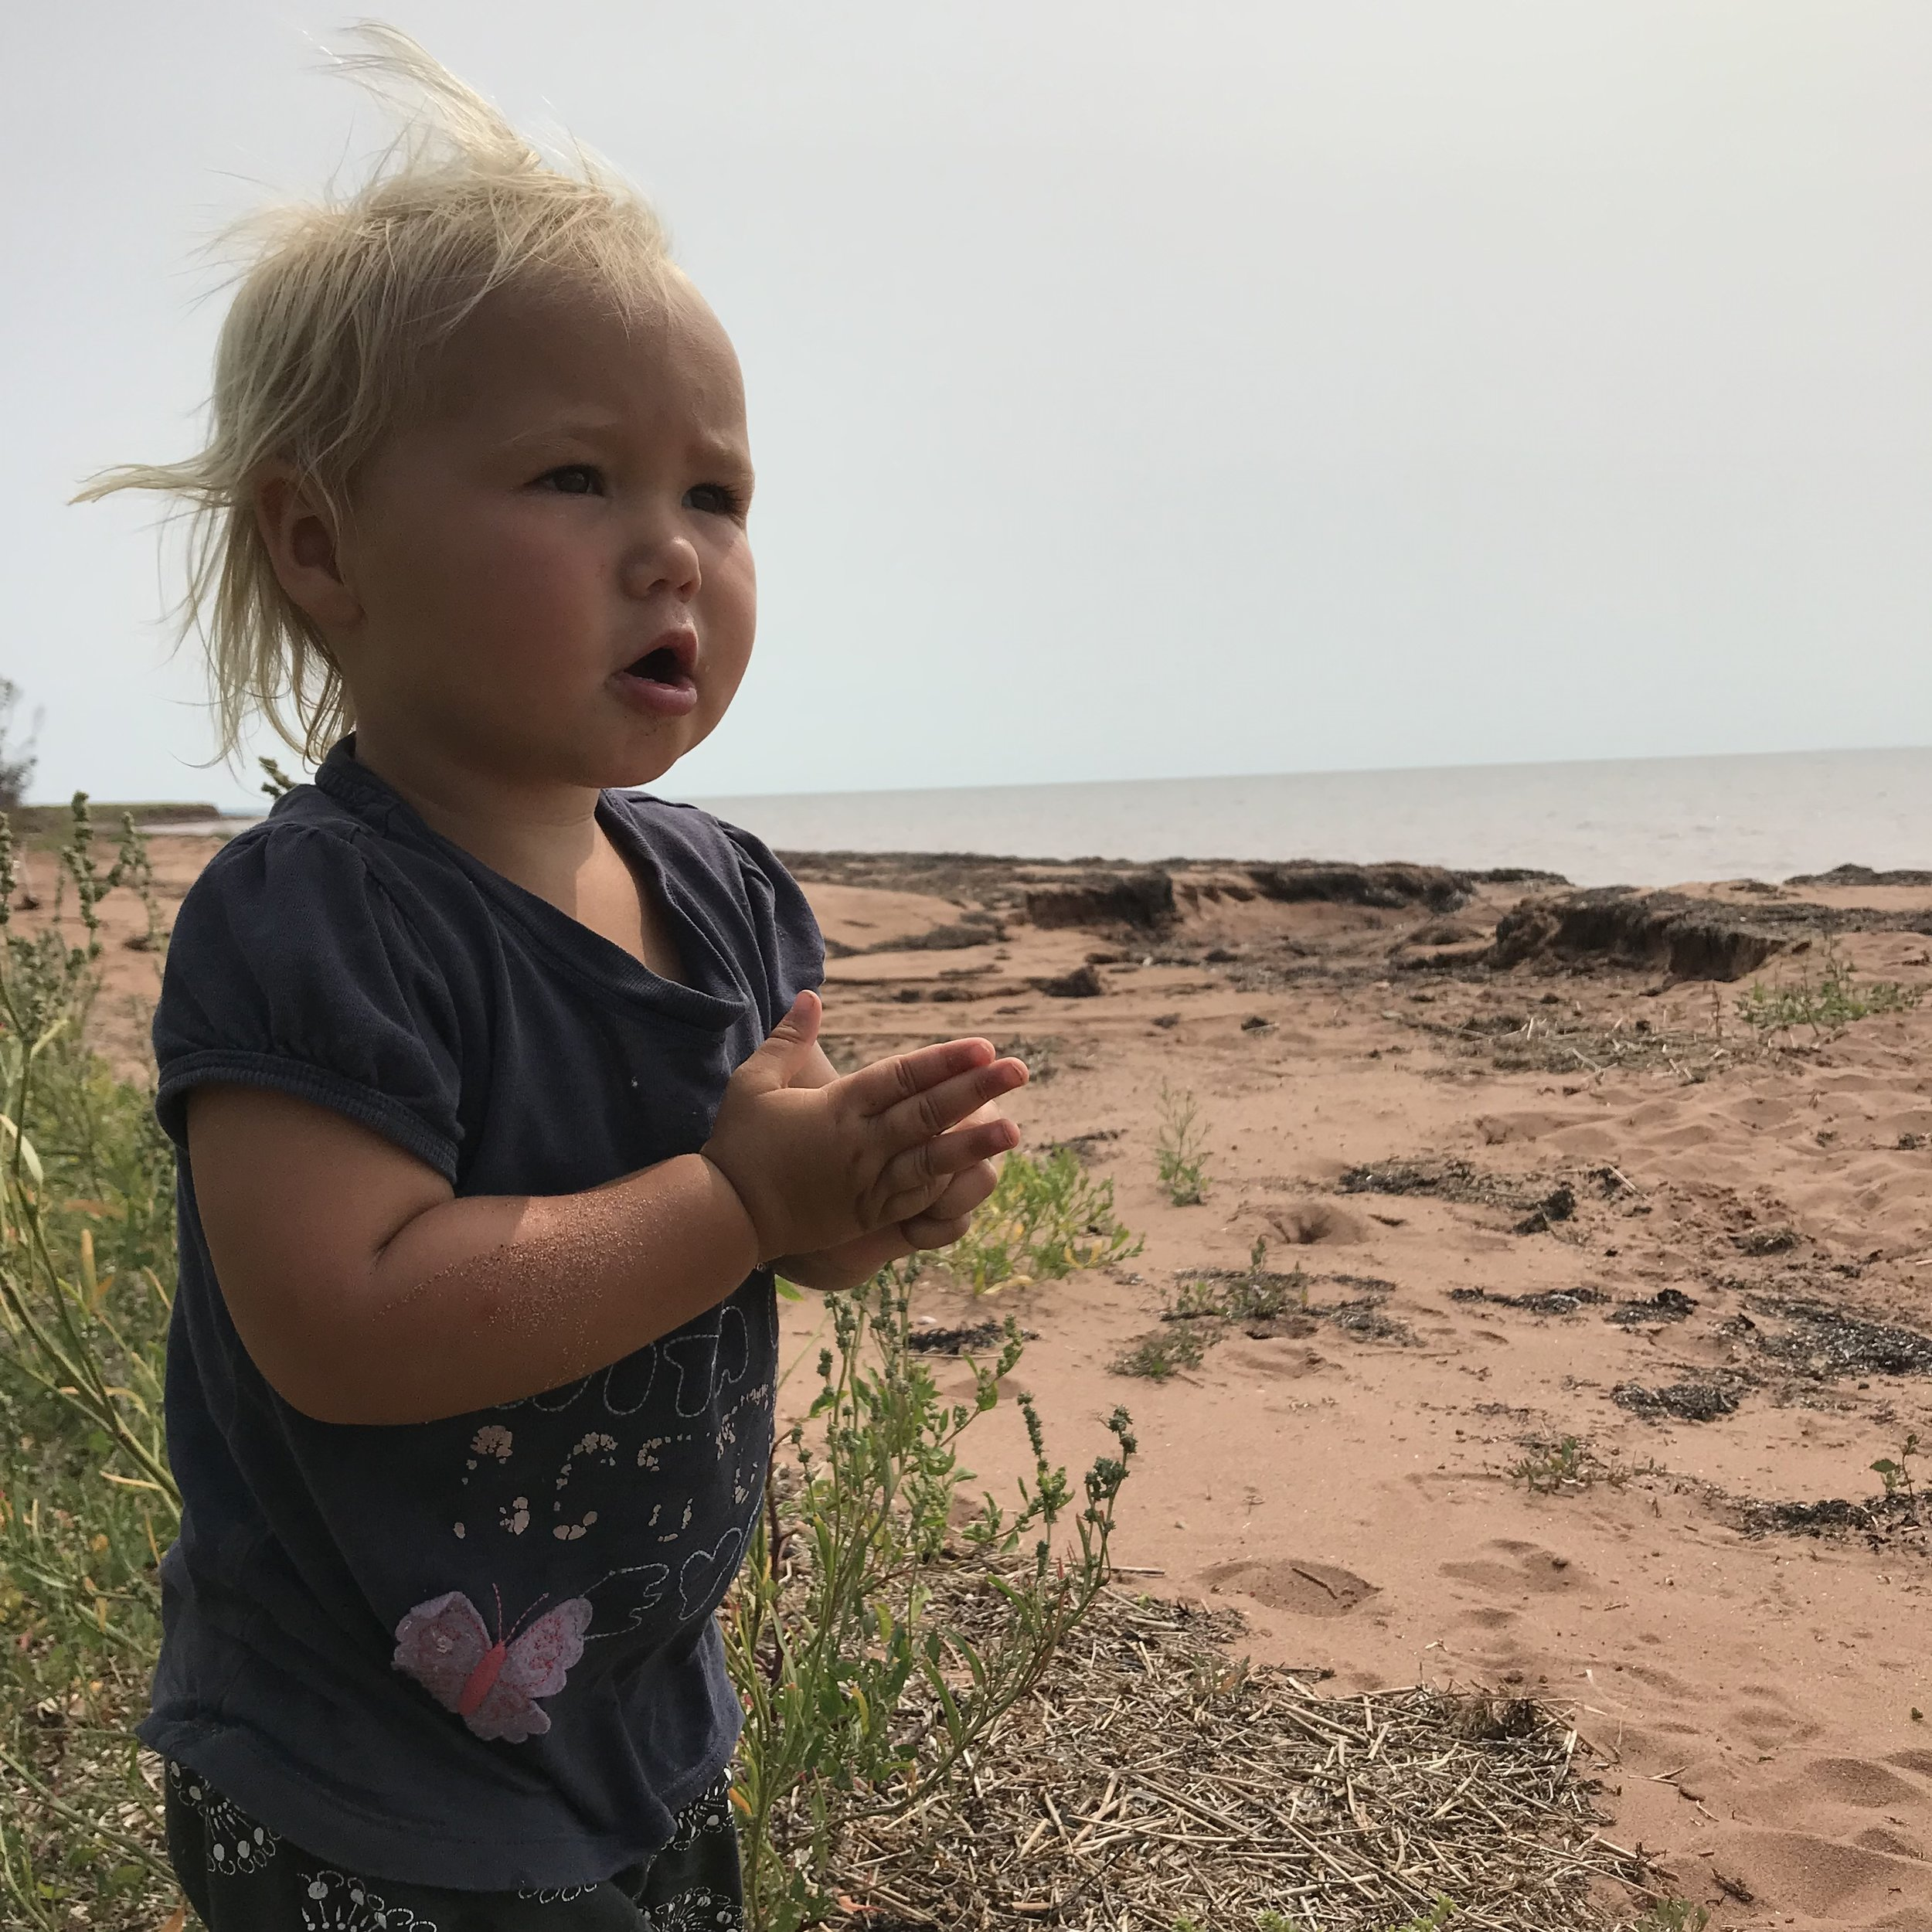 Sprout #4 has spent almost her entire life outdoors in the sand, wind, sun and rain and she LOVES it! We are so glad we are able to do these things as a family and make so many wonderful memories!